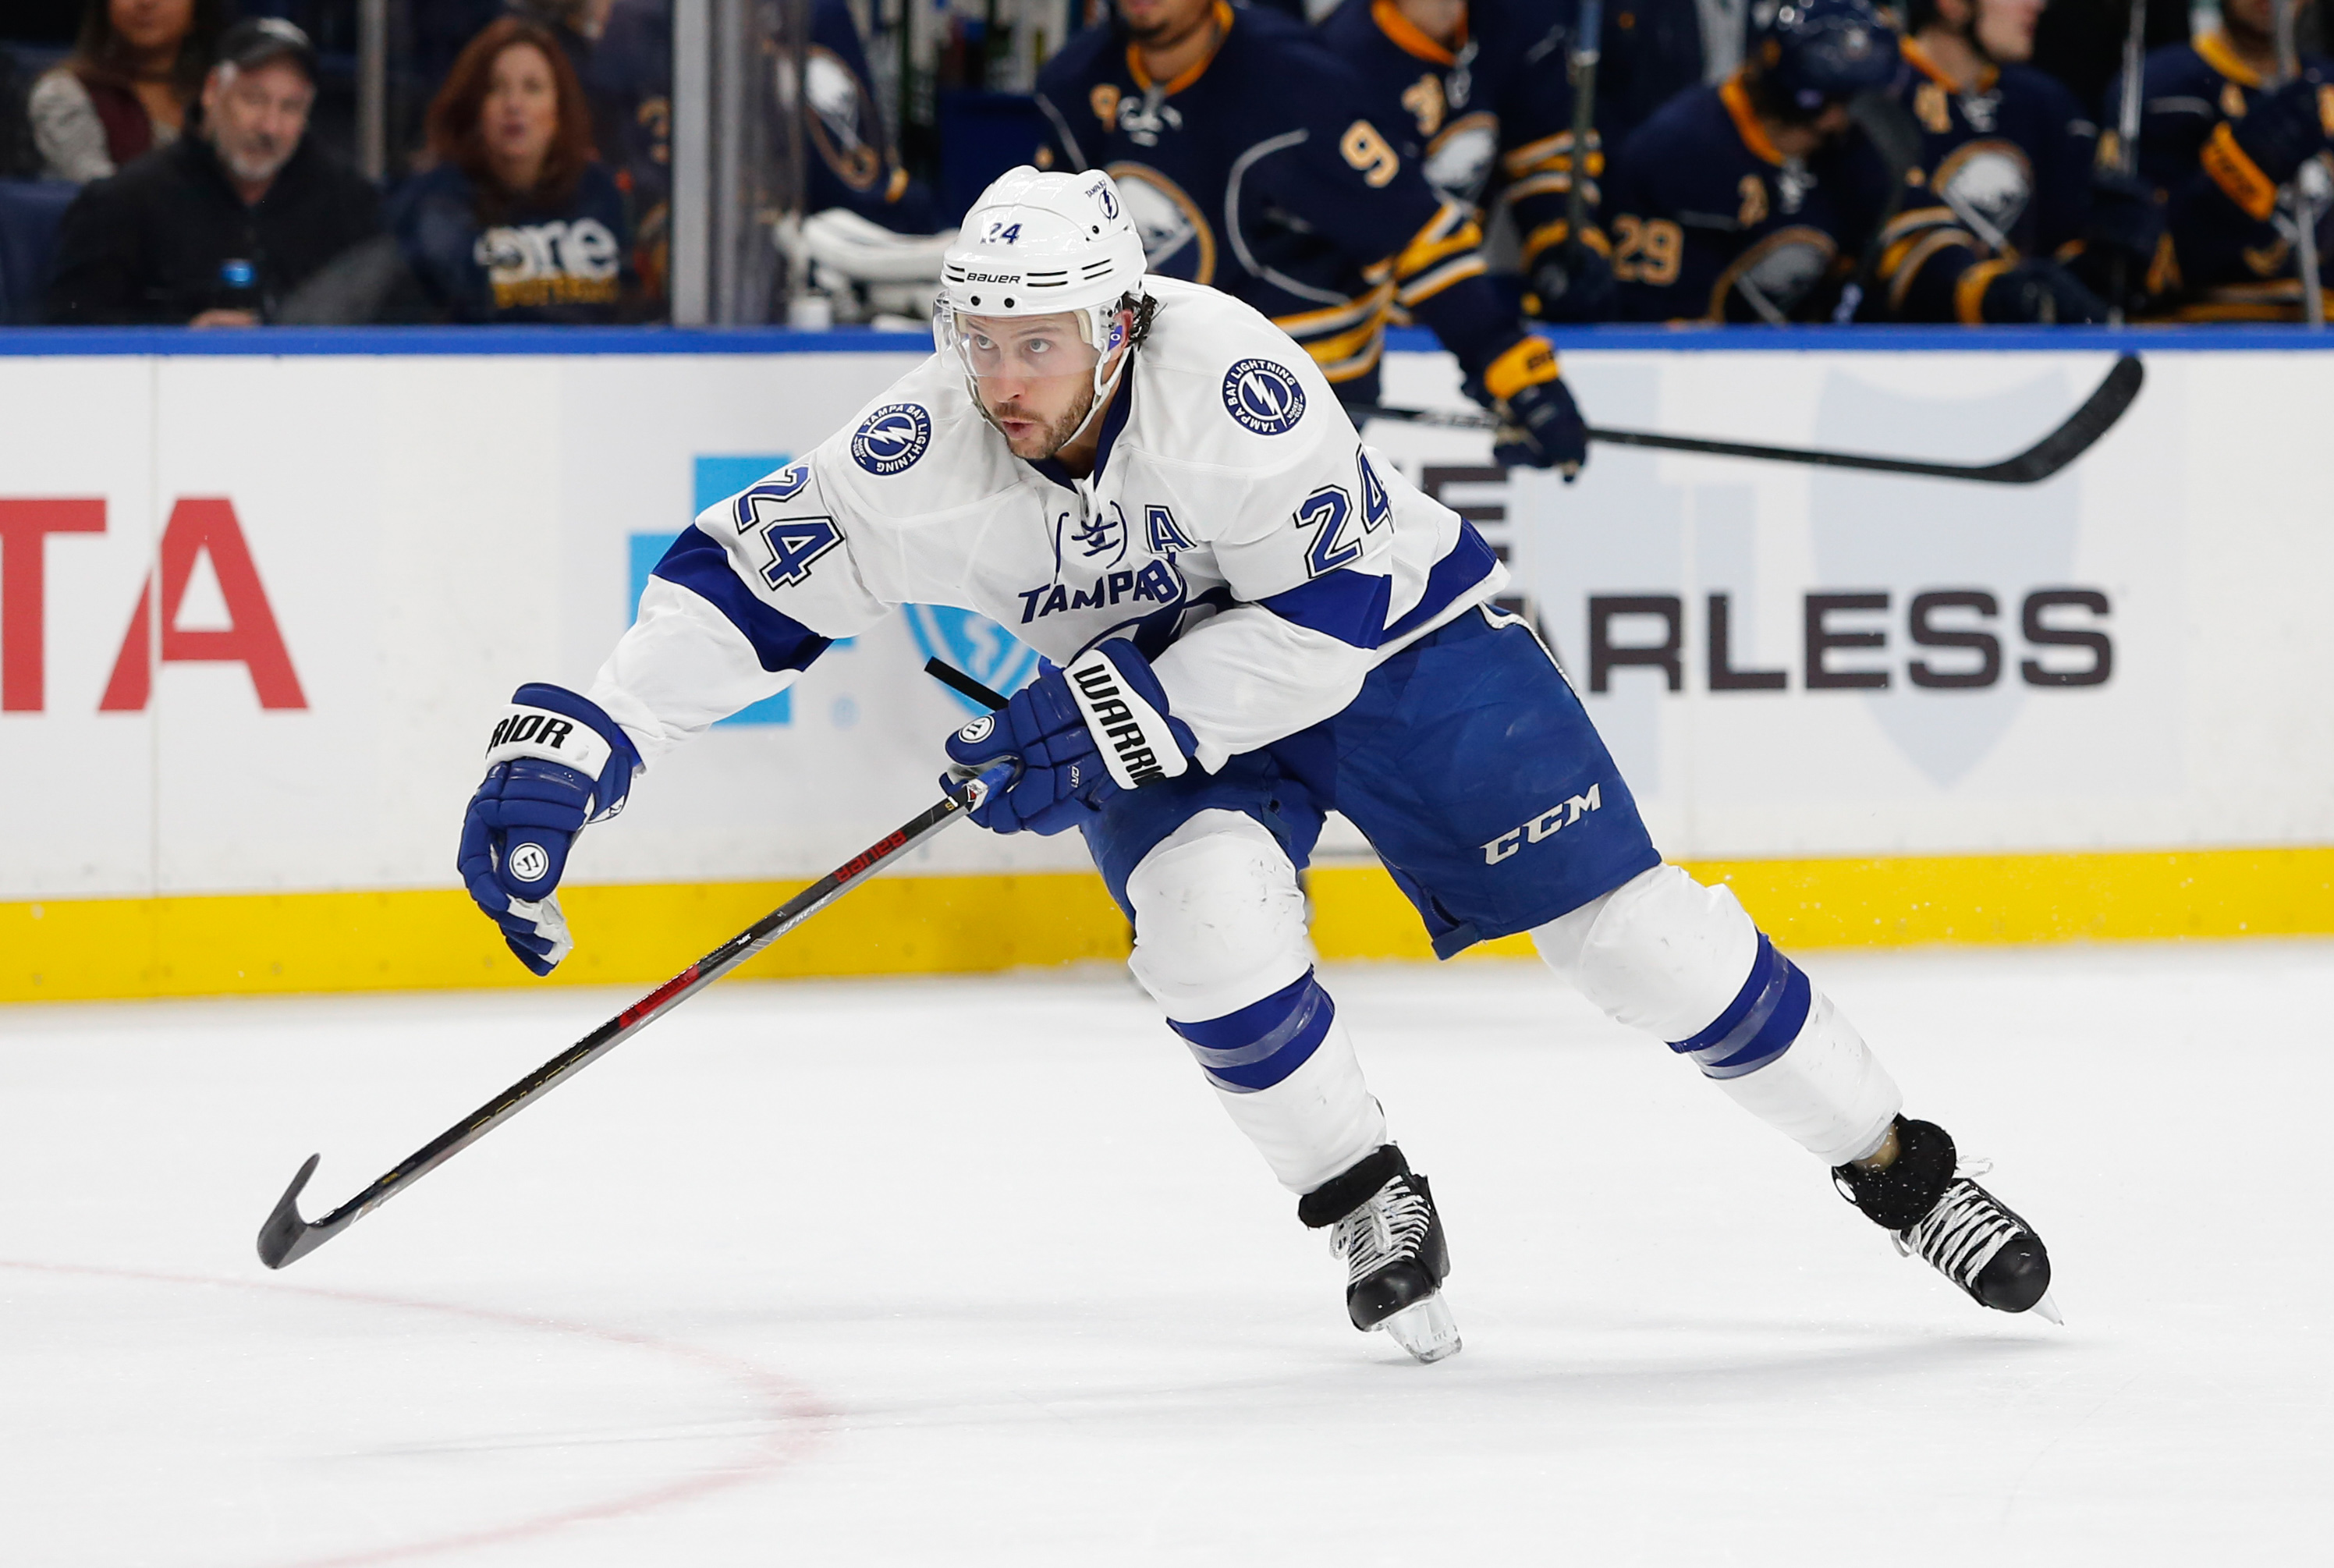 9704478-nhl-tampa-bay-lightning-at-buffalo-sabres